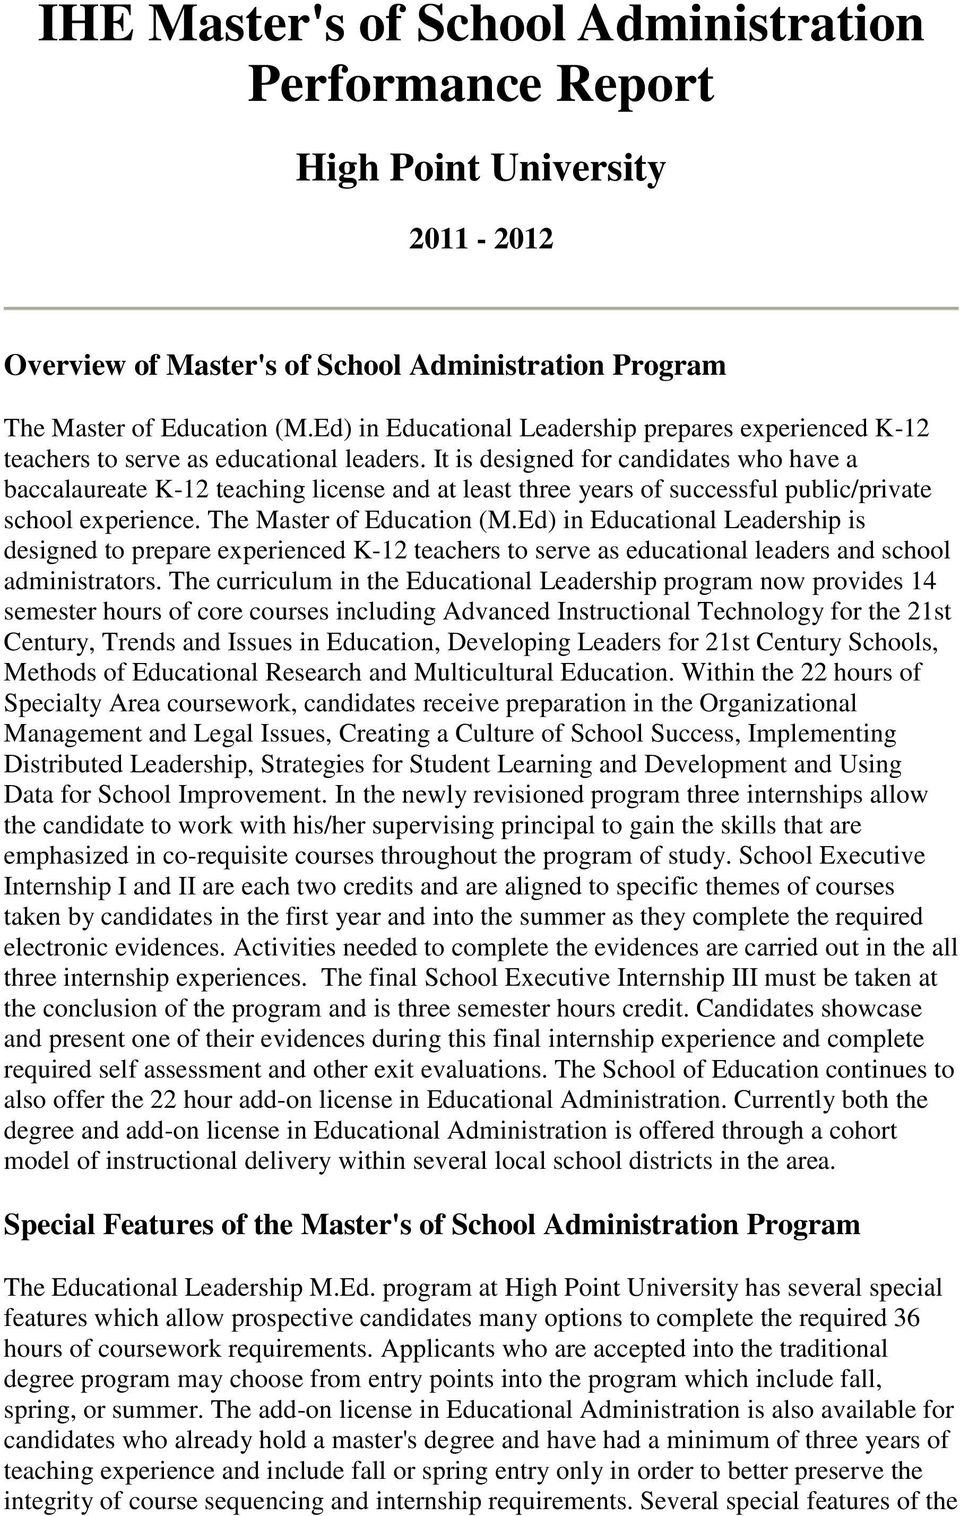 It is designed for candidates who have a baccalaureate K-12 teaching license and at least three years of successful public/private school experience. The Master of Education (M.